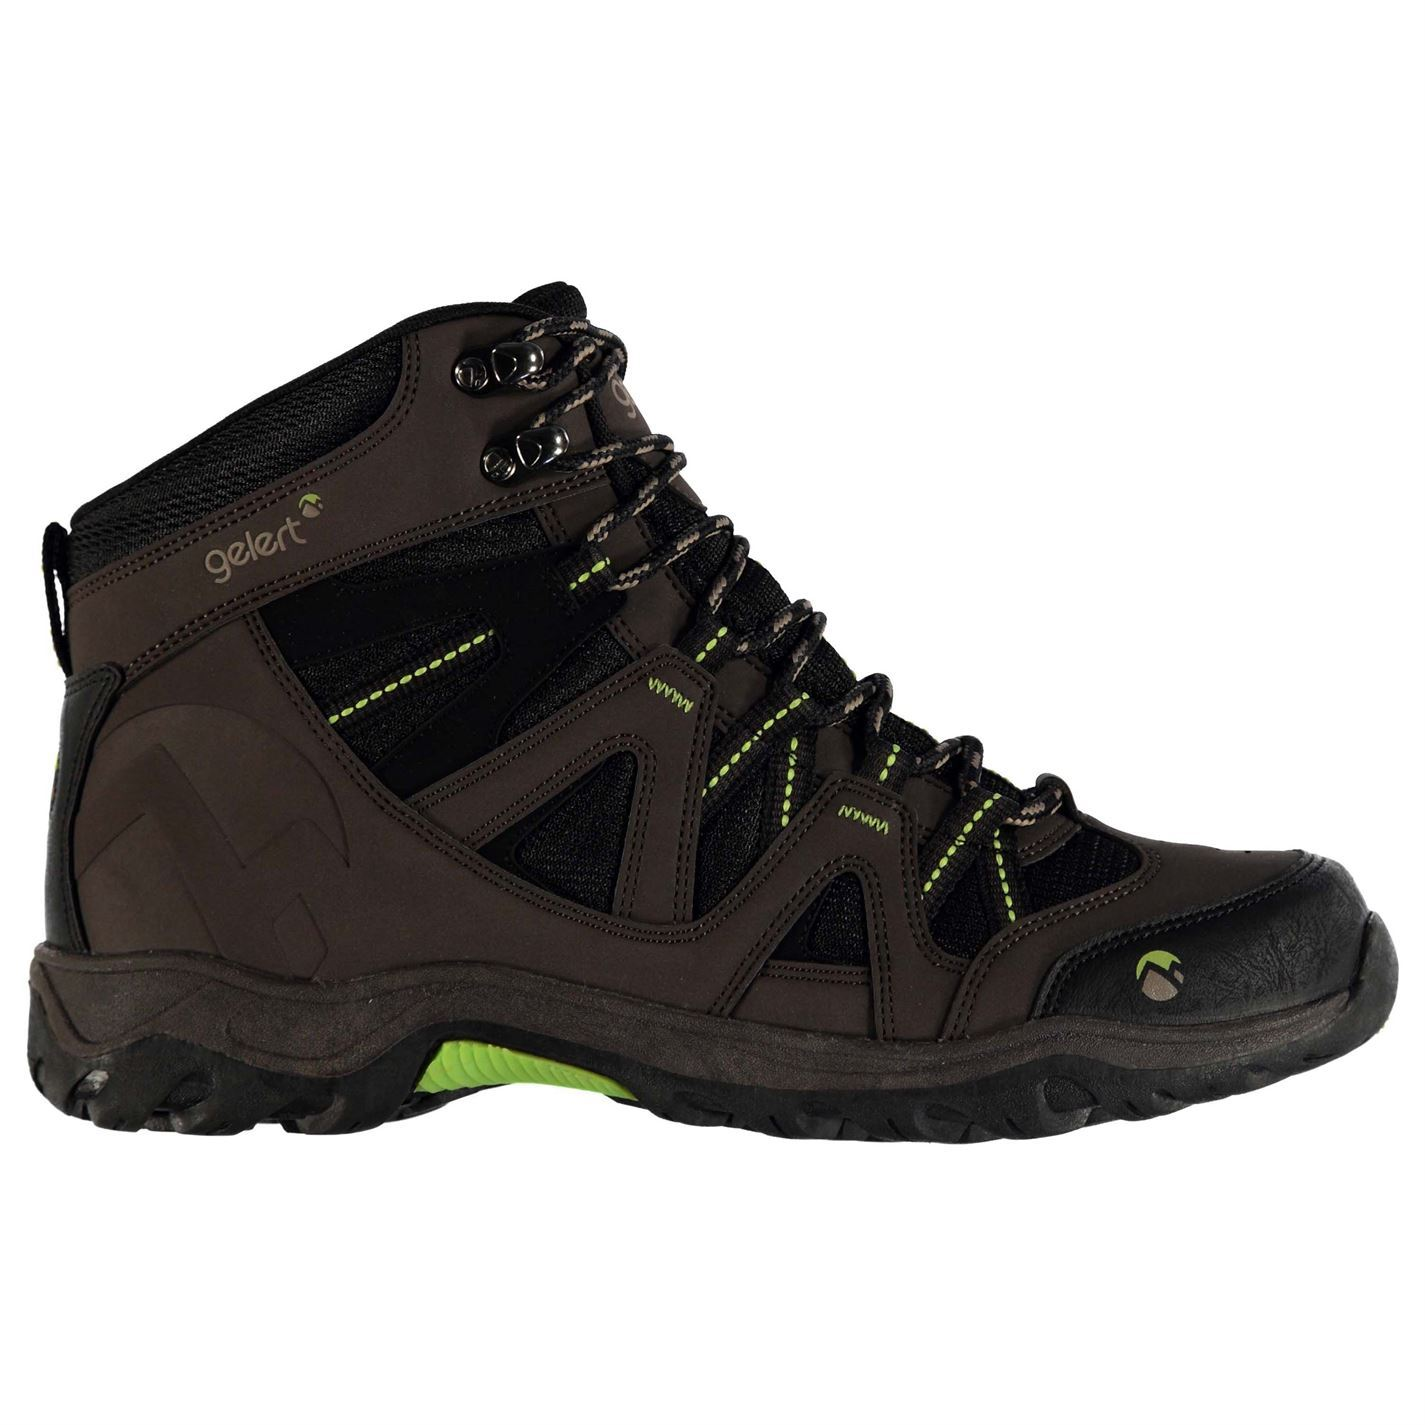 Mens Ottawa Mid Walking Boots Lace Up Padded Ankle Collar Outdoor Shoes